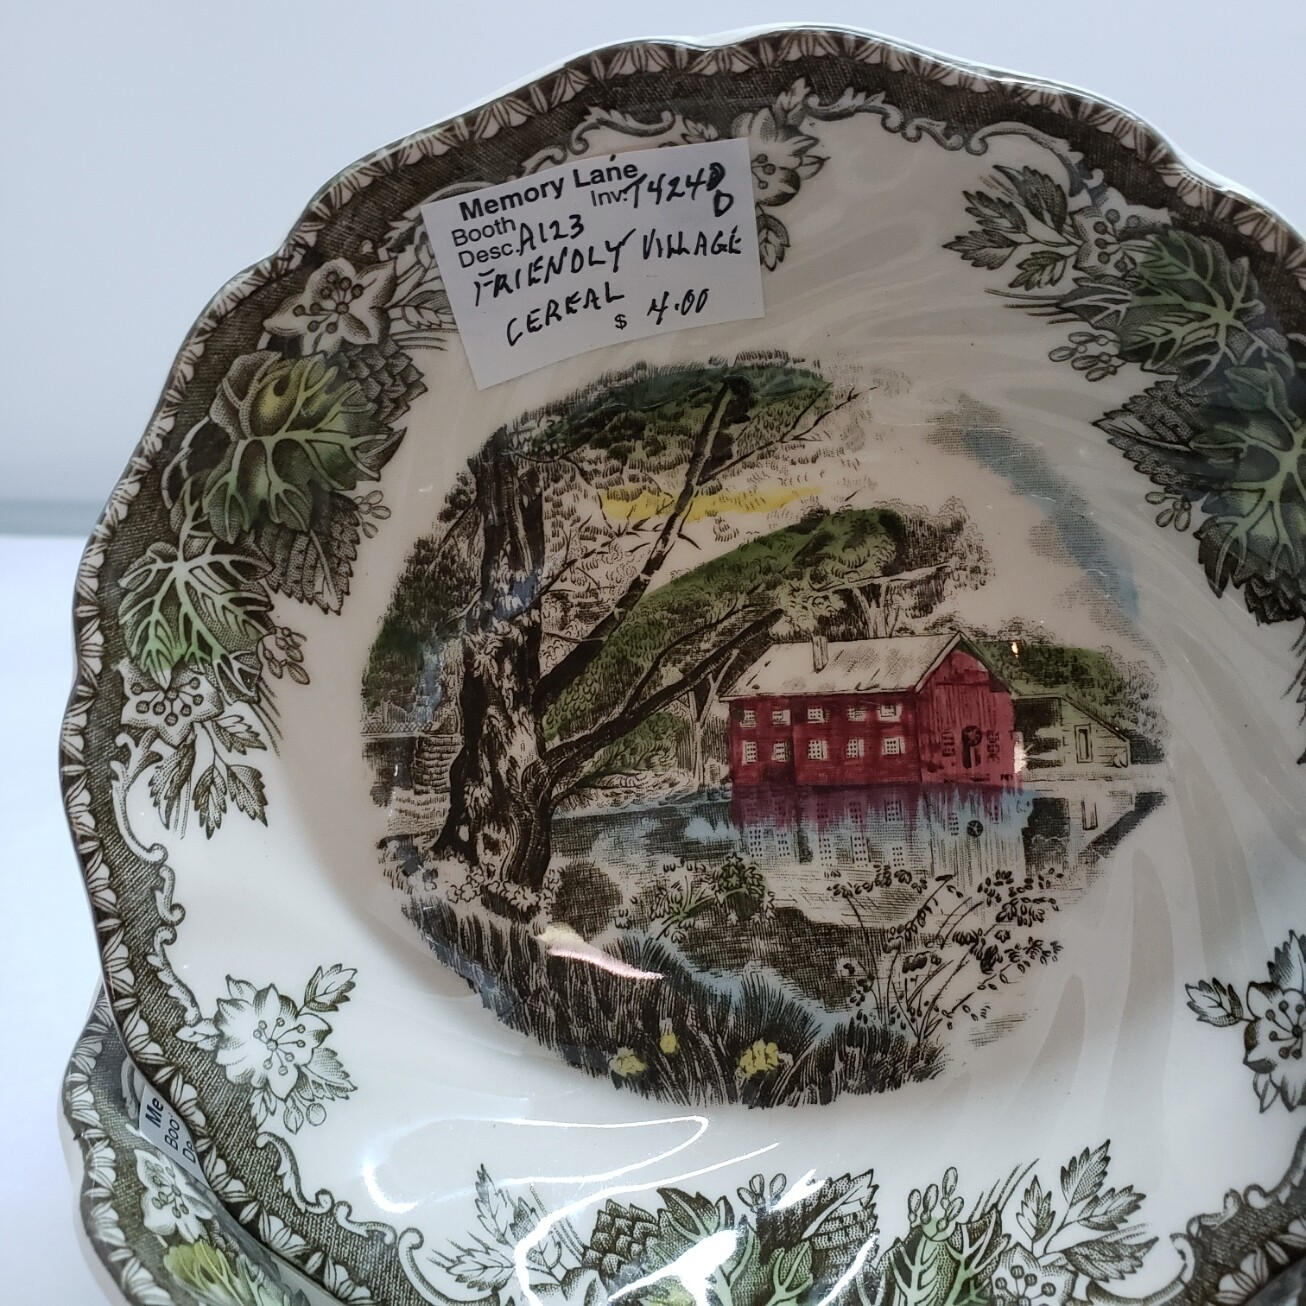 Friendly Village - Johnson Brothers - Cereal Bowl 6 inch  - Booth A123